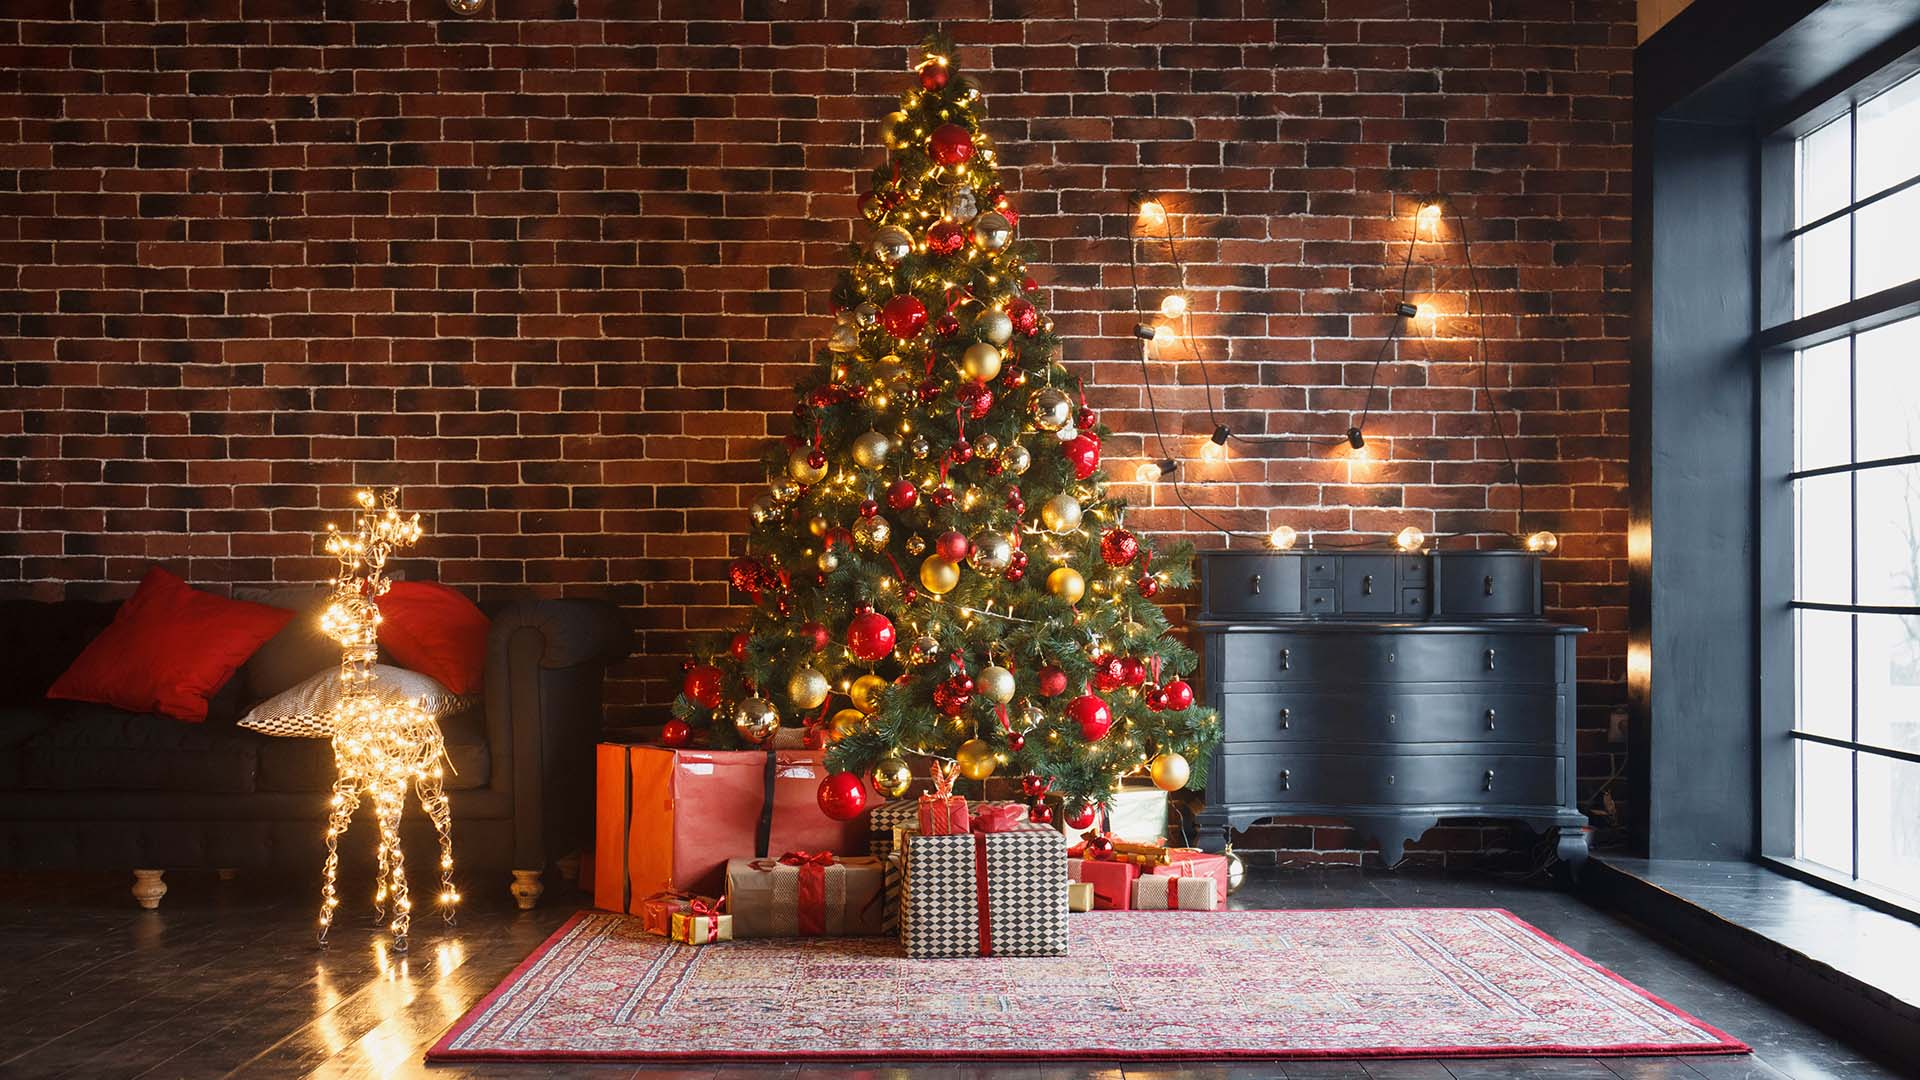 Real Christmas Trees Are Great But They Re Messy And Require A Lot Of Maintenance An Artificial Tree Reduces The Hle You Need To Make Sure Get